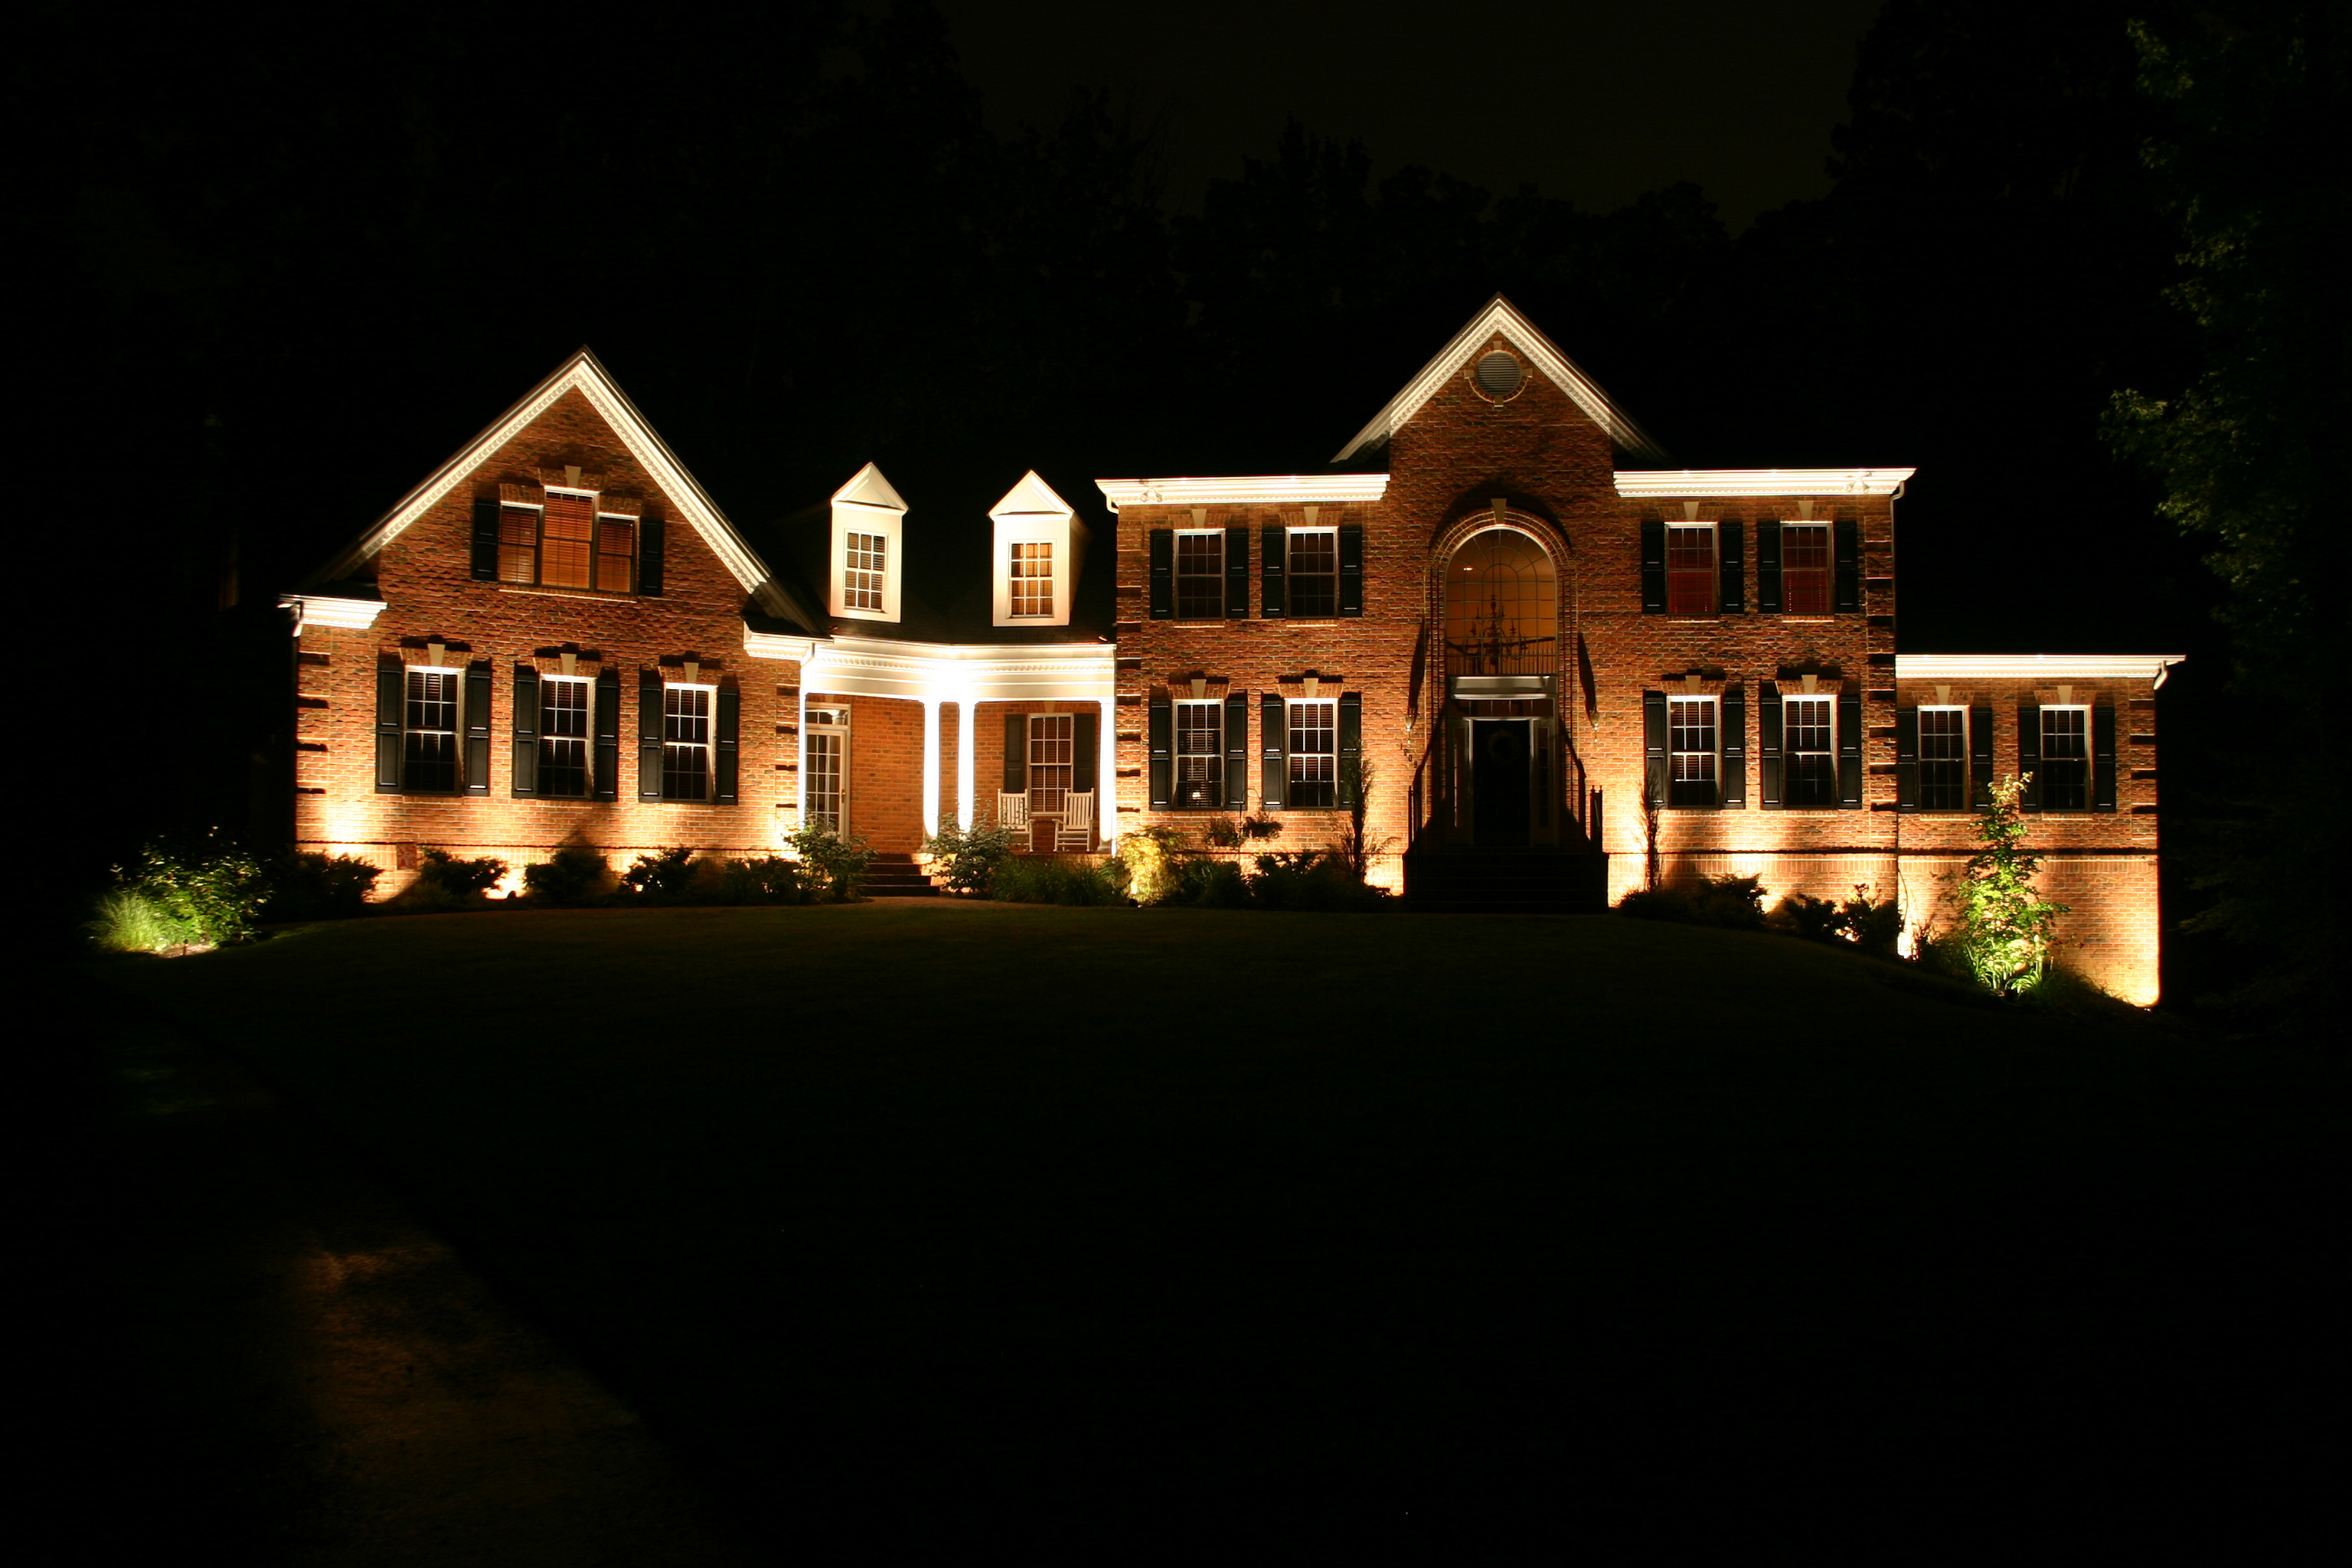 & Architectural Lighting in Cleveland and Northern OH